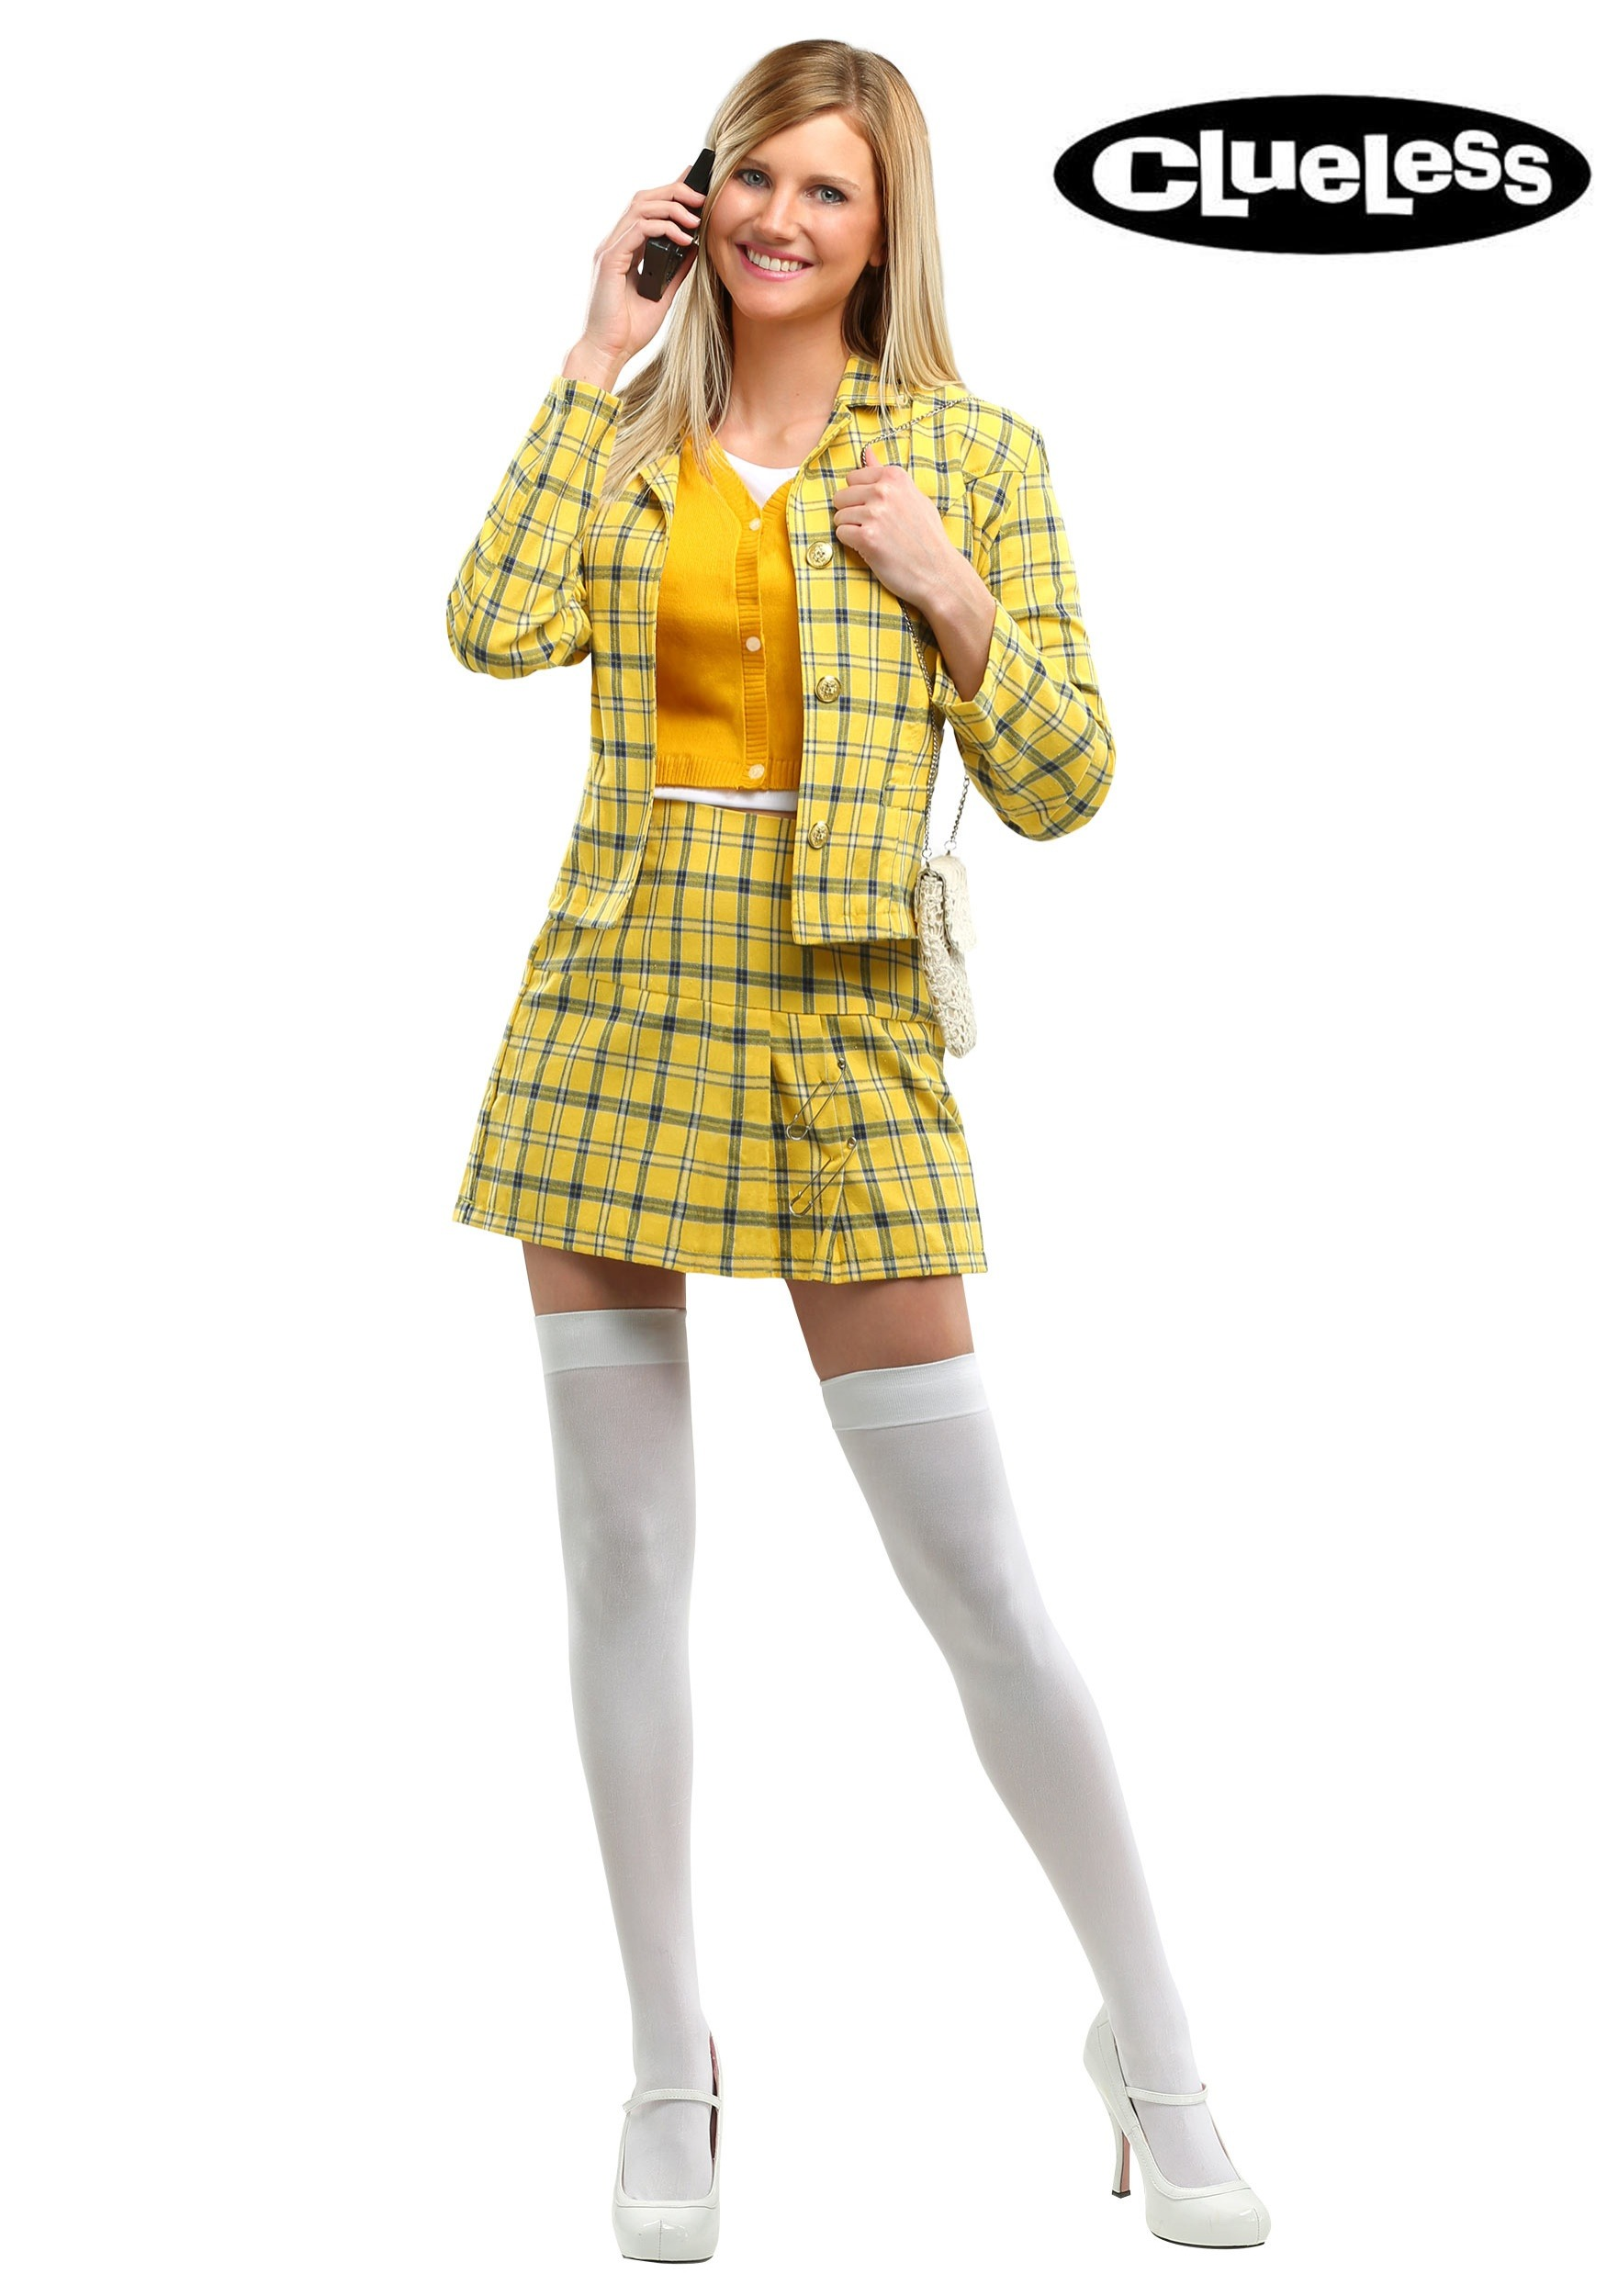 Clueless Cher Plus Size Womens Costume  sc 1 st  Halloween Costumes UK & Plus Size Costumes - Sexy Mens Womens Plus Size Halloween Costumes